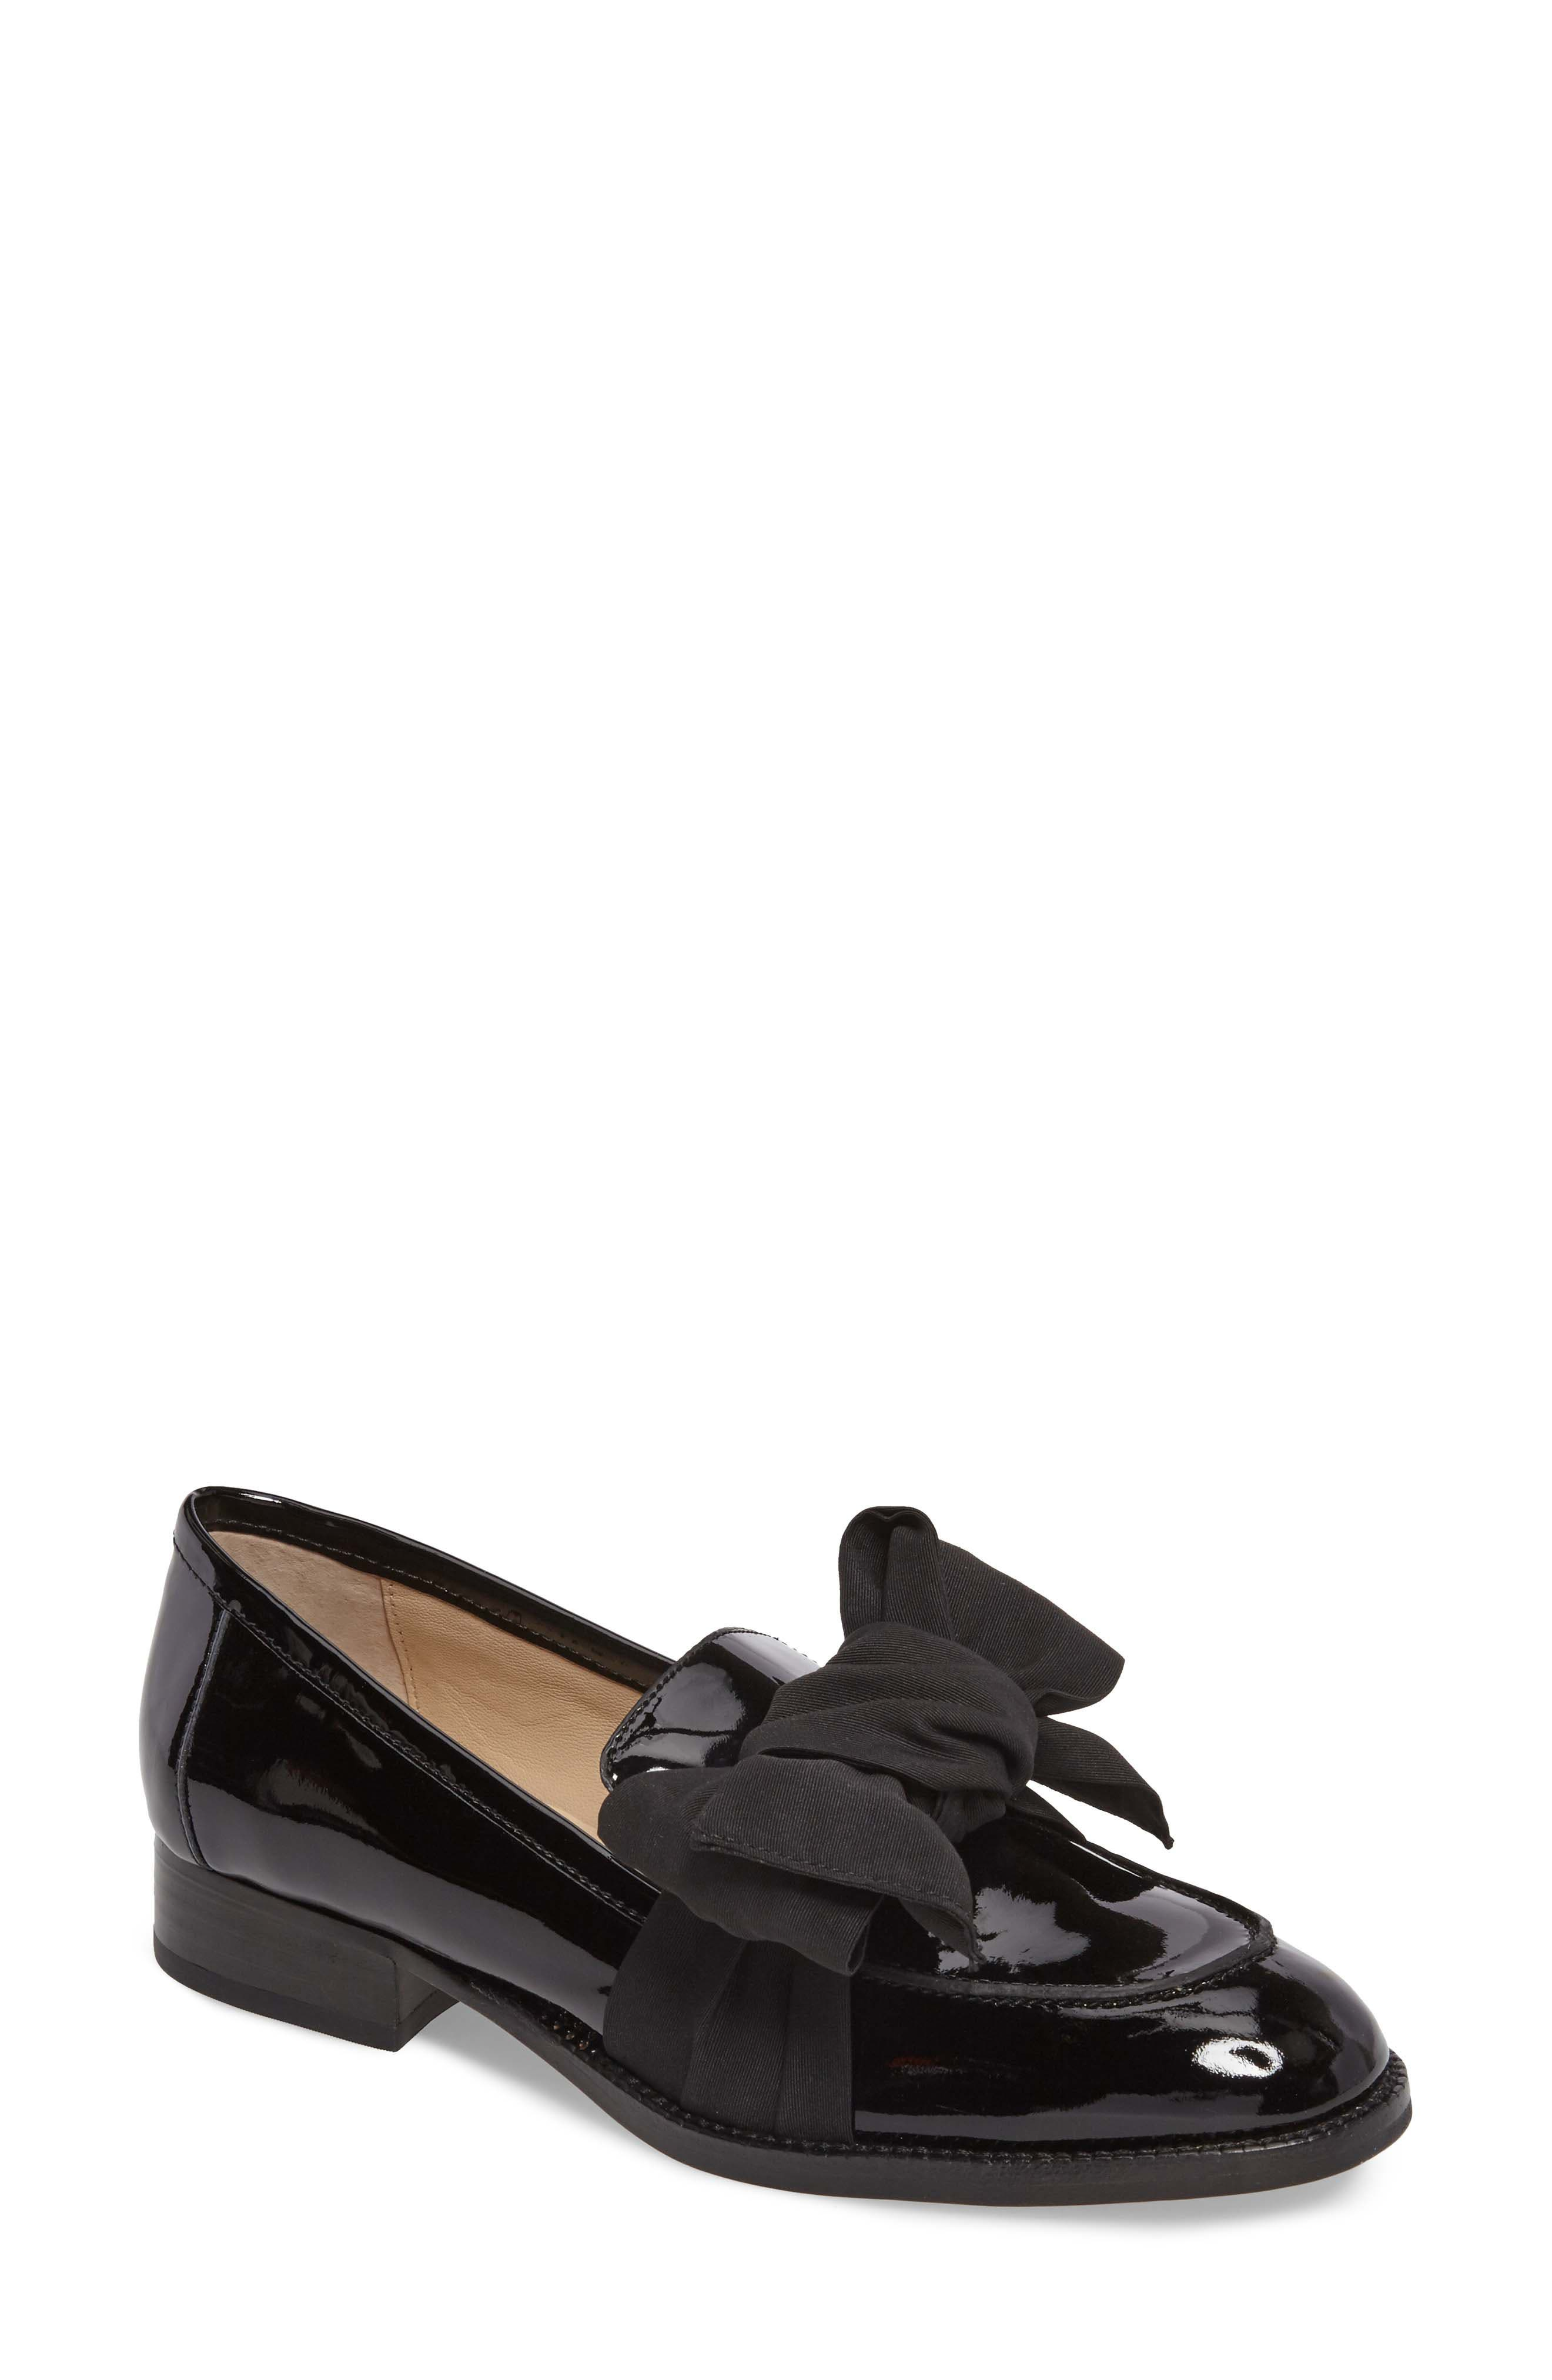 BOTKIER Violet Bow Loafer, Main, color, BLACK PATENT LEATHER